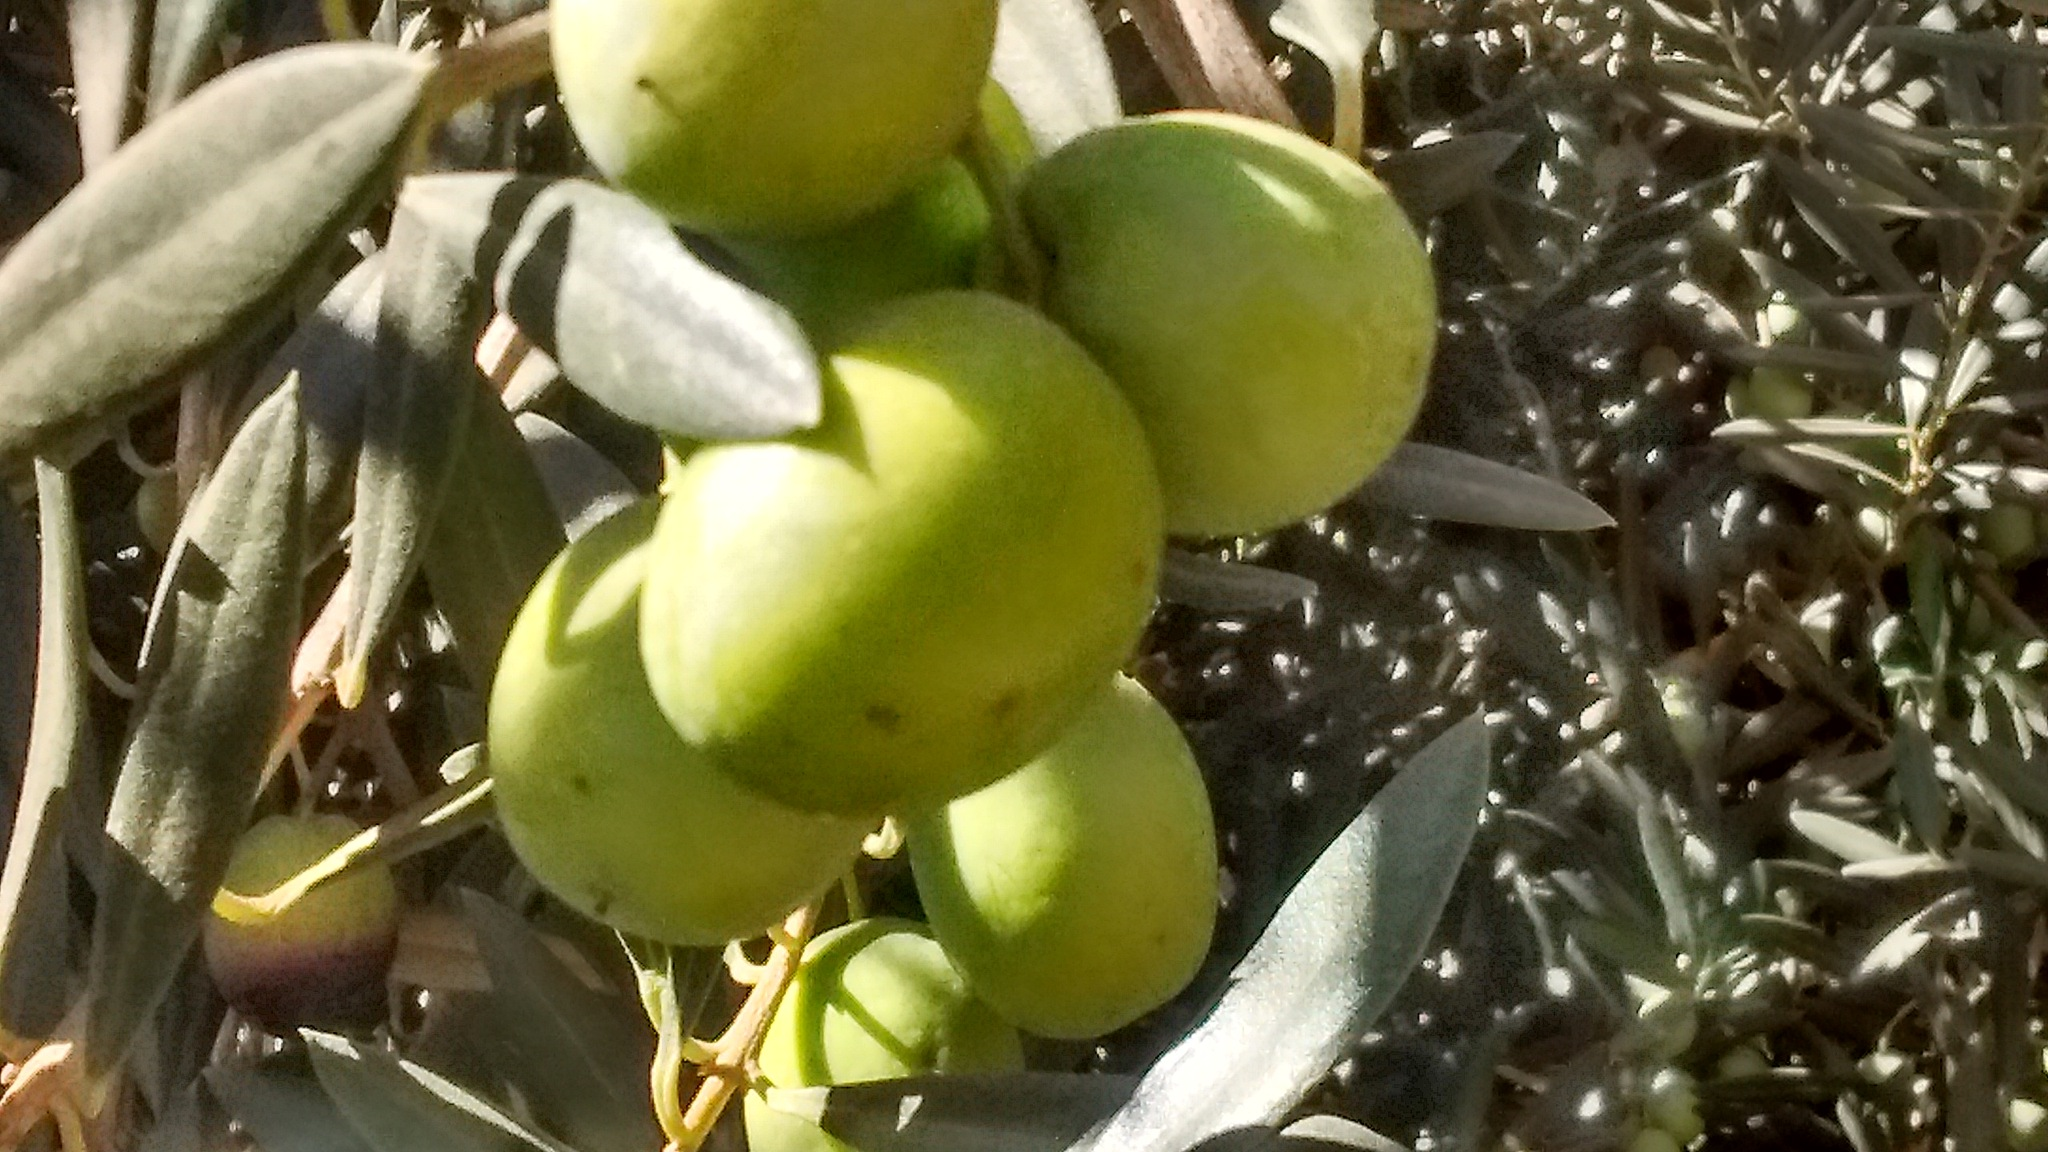 Olives by Valerie Hall